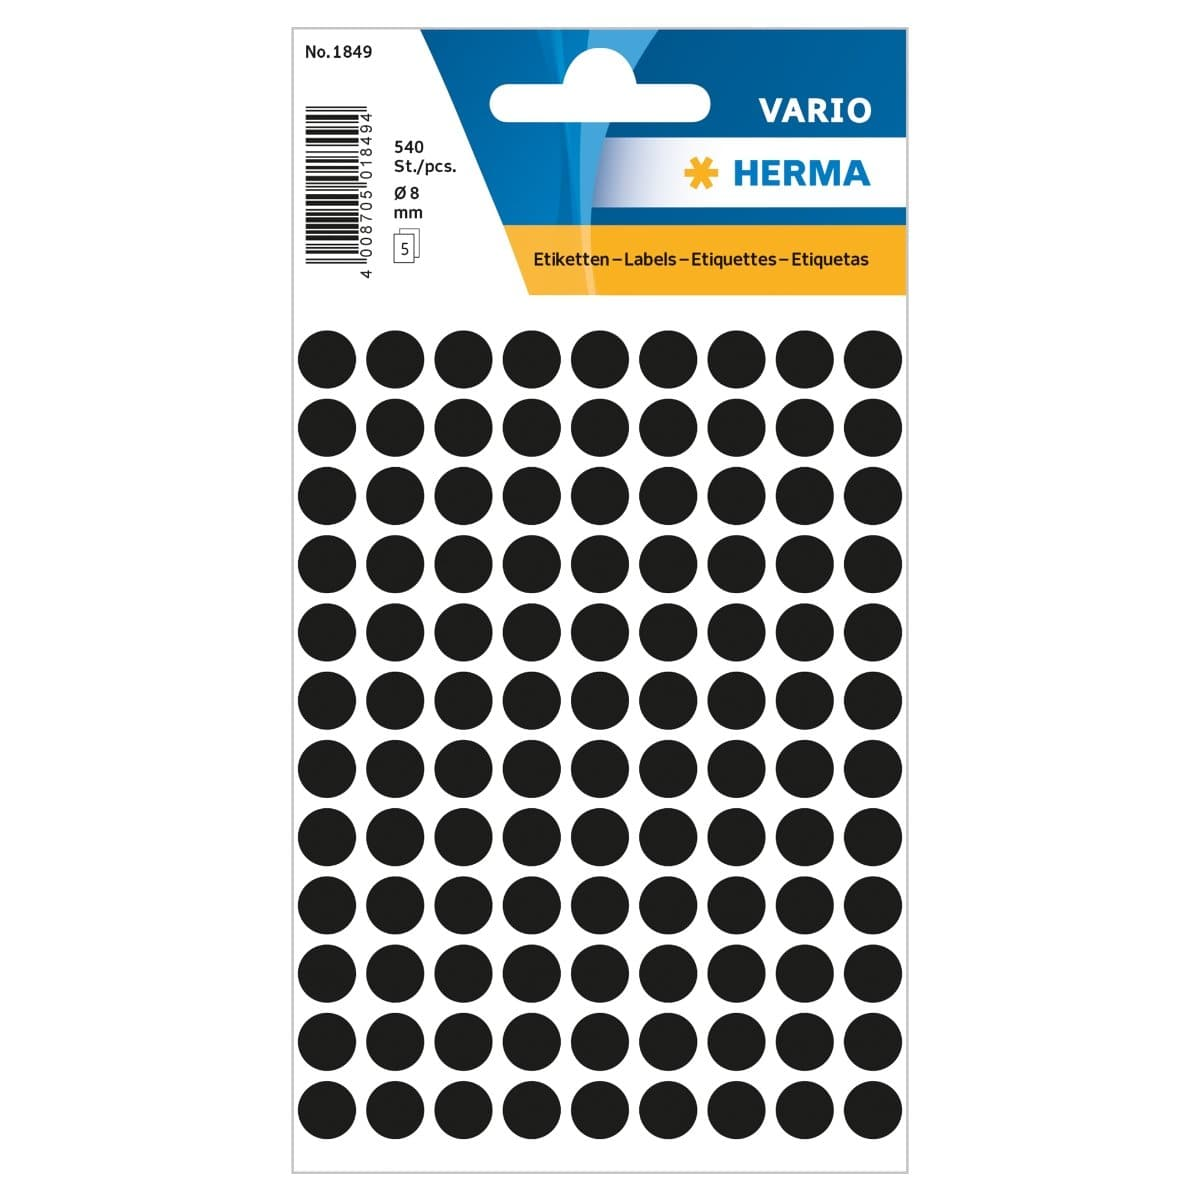 Herma Vario Sticker Color Dots, 8 mm, 540/pack, Black